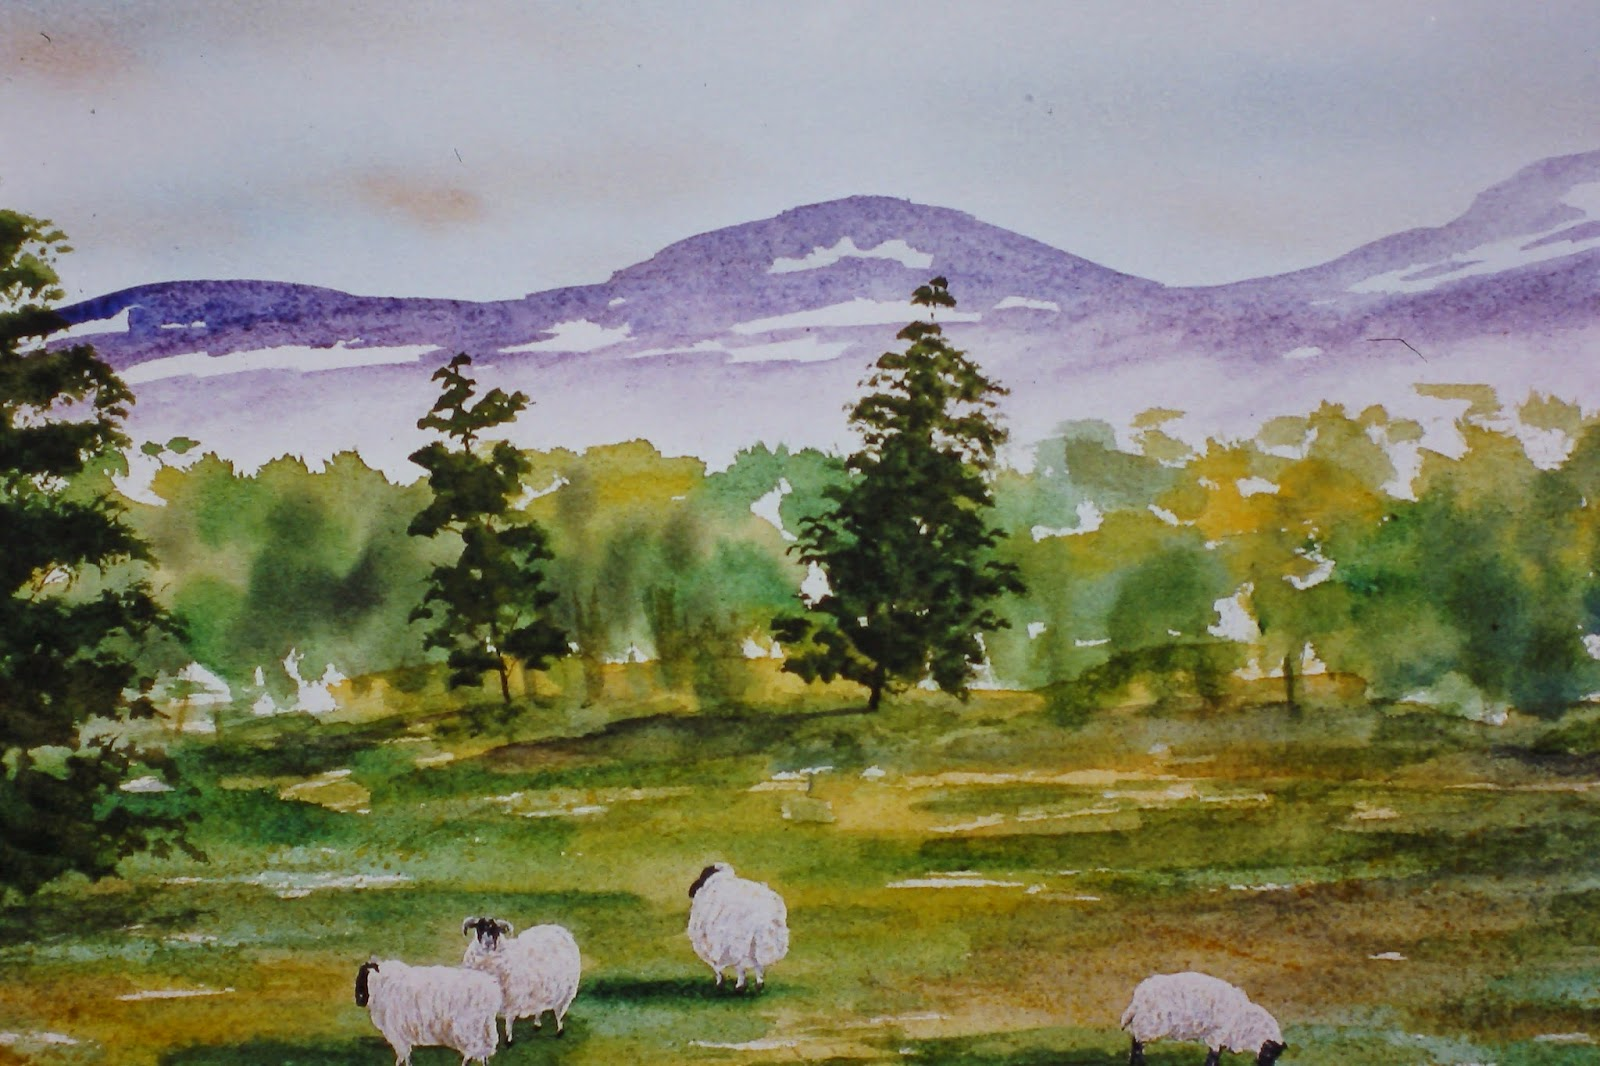 View from Little Keithock Farmhouse, near Fettercairn, Angus, Scotland  28x40 inches. Watercolor on paper, c. 1992.  In a private collection in Glasgow, Scotland